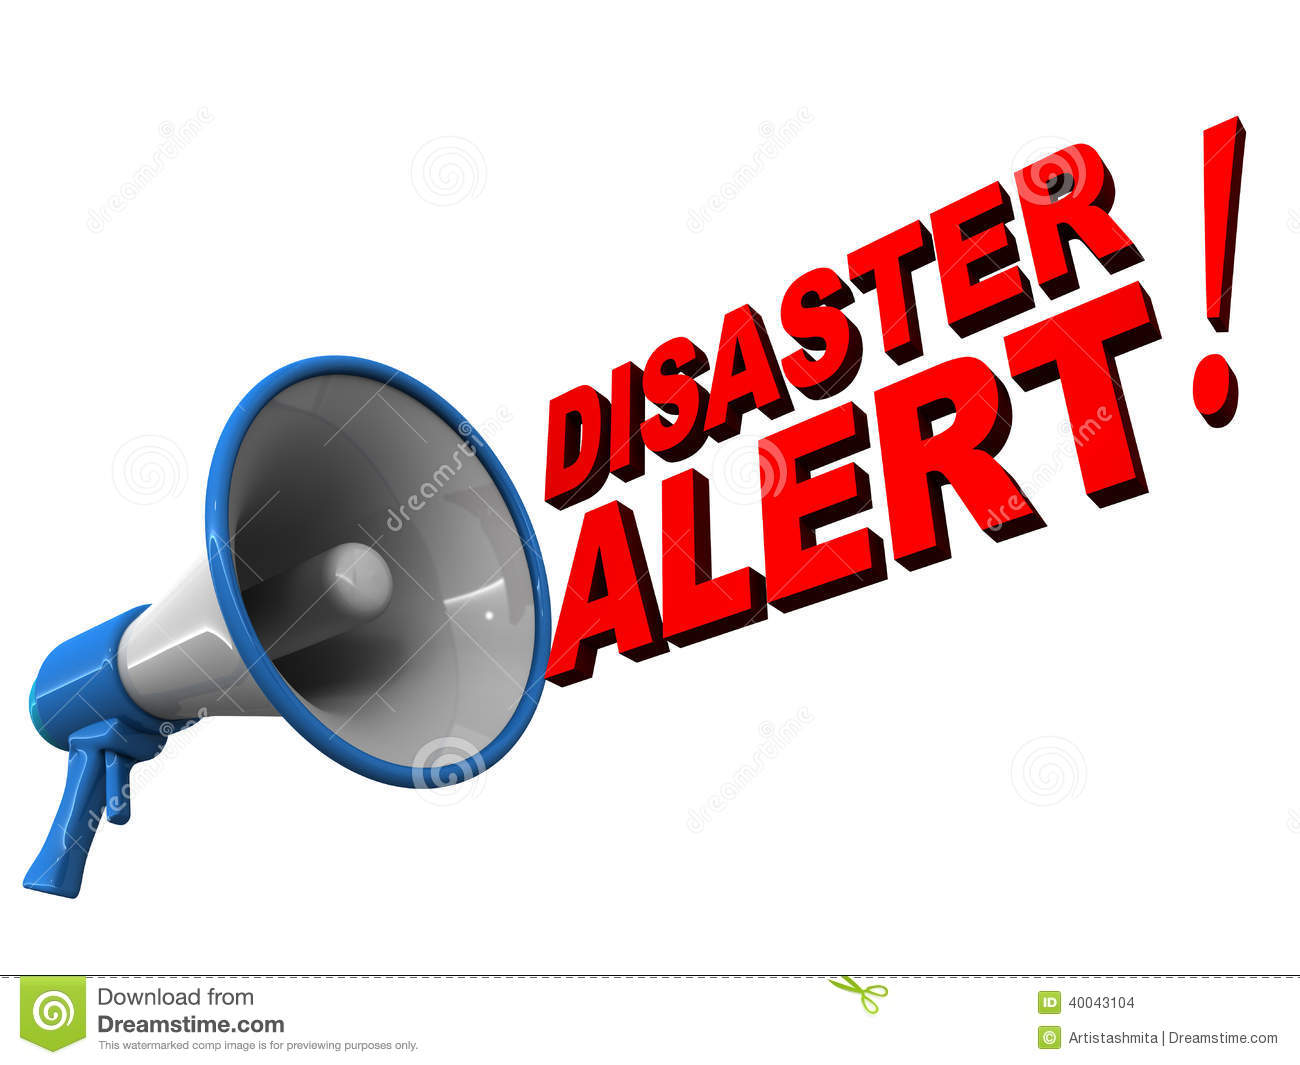 Disaster management clipart.